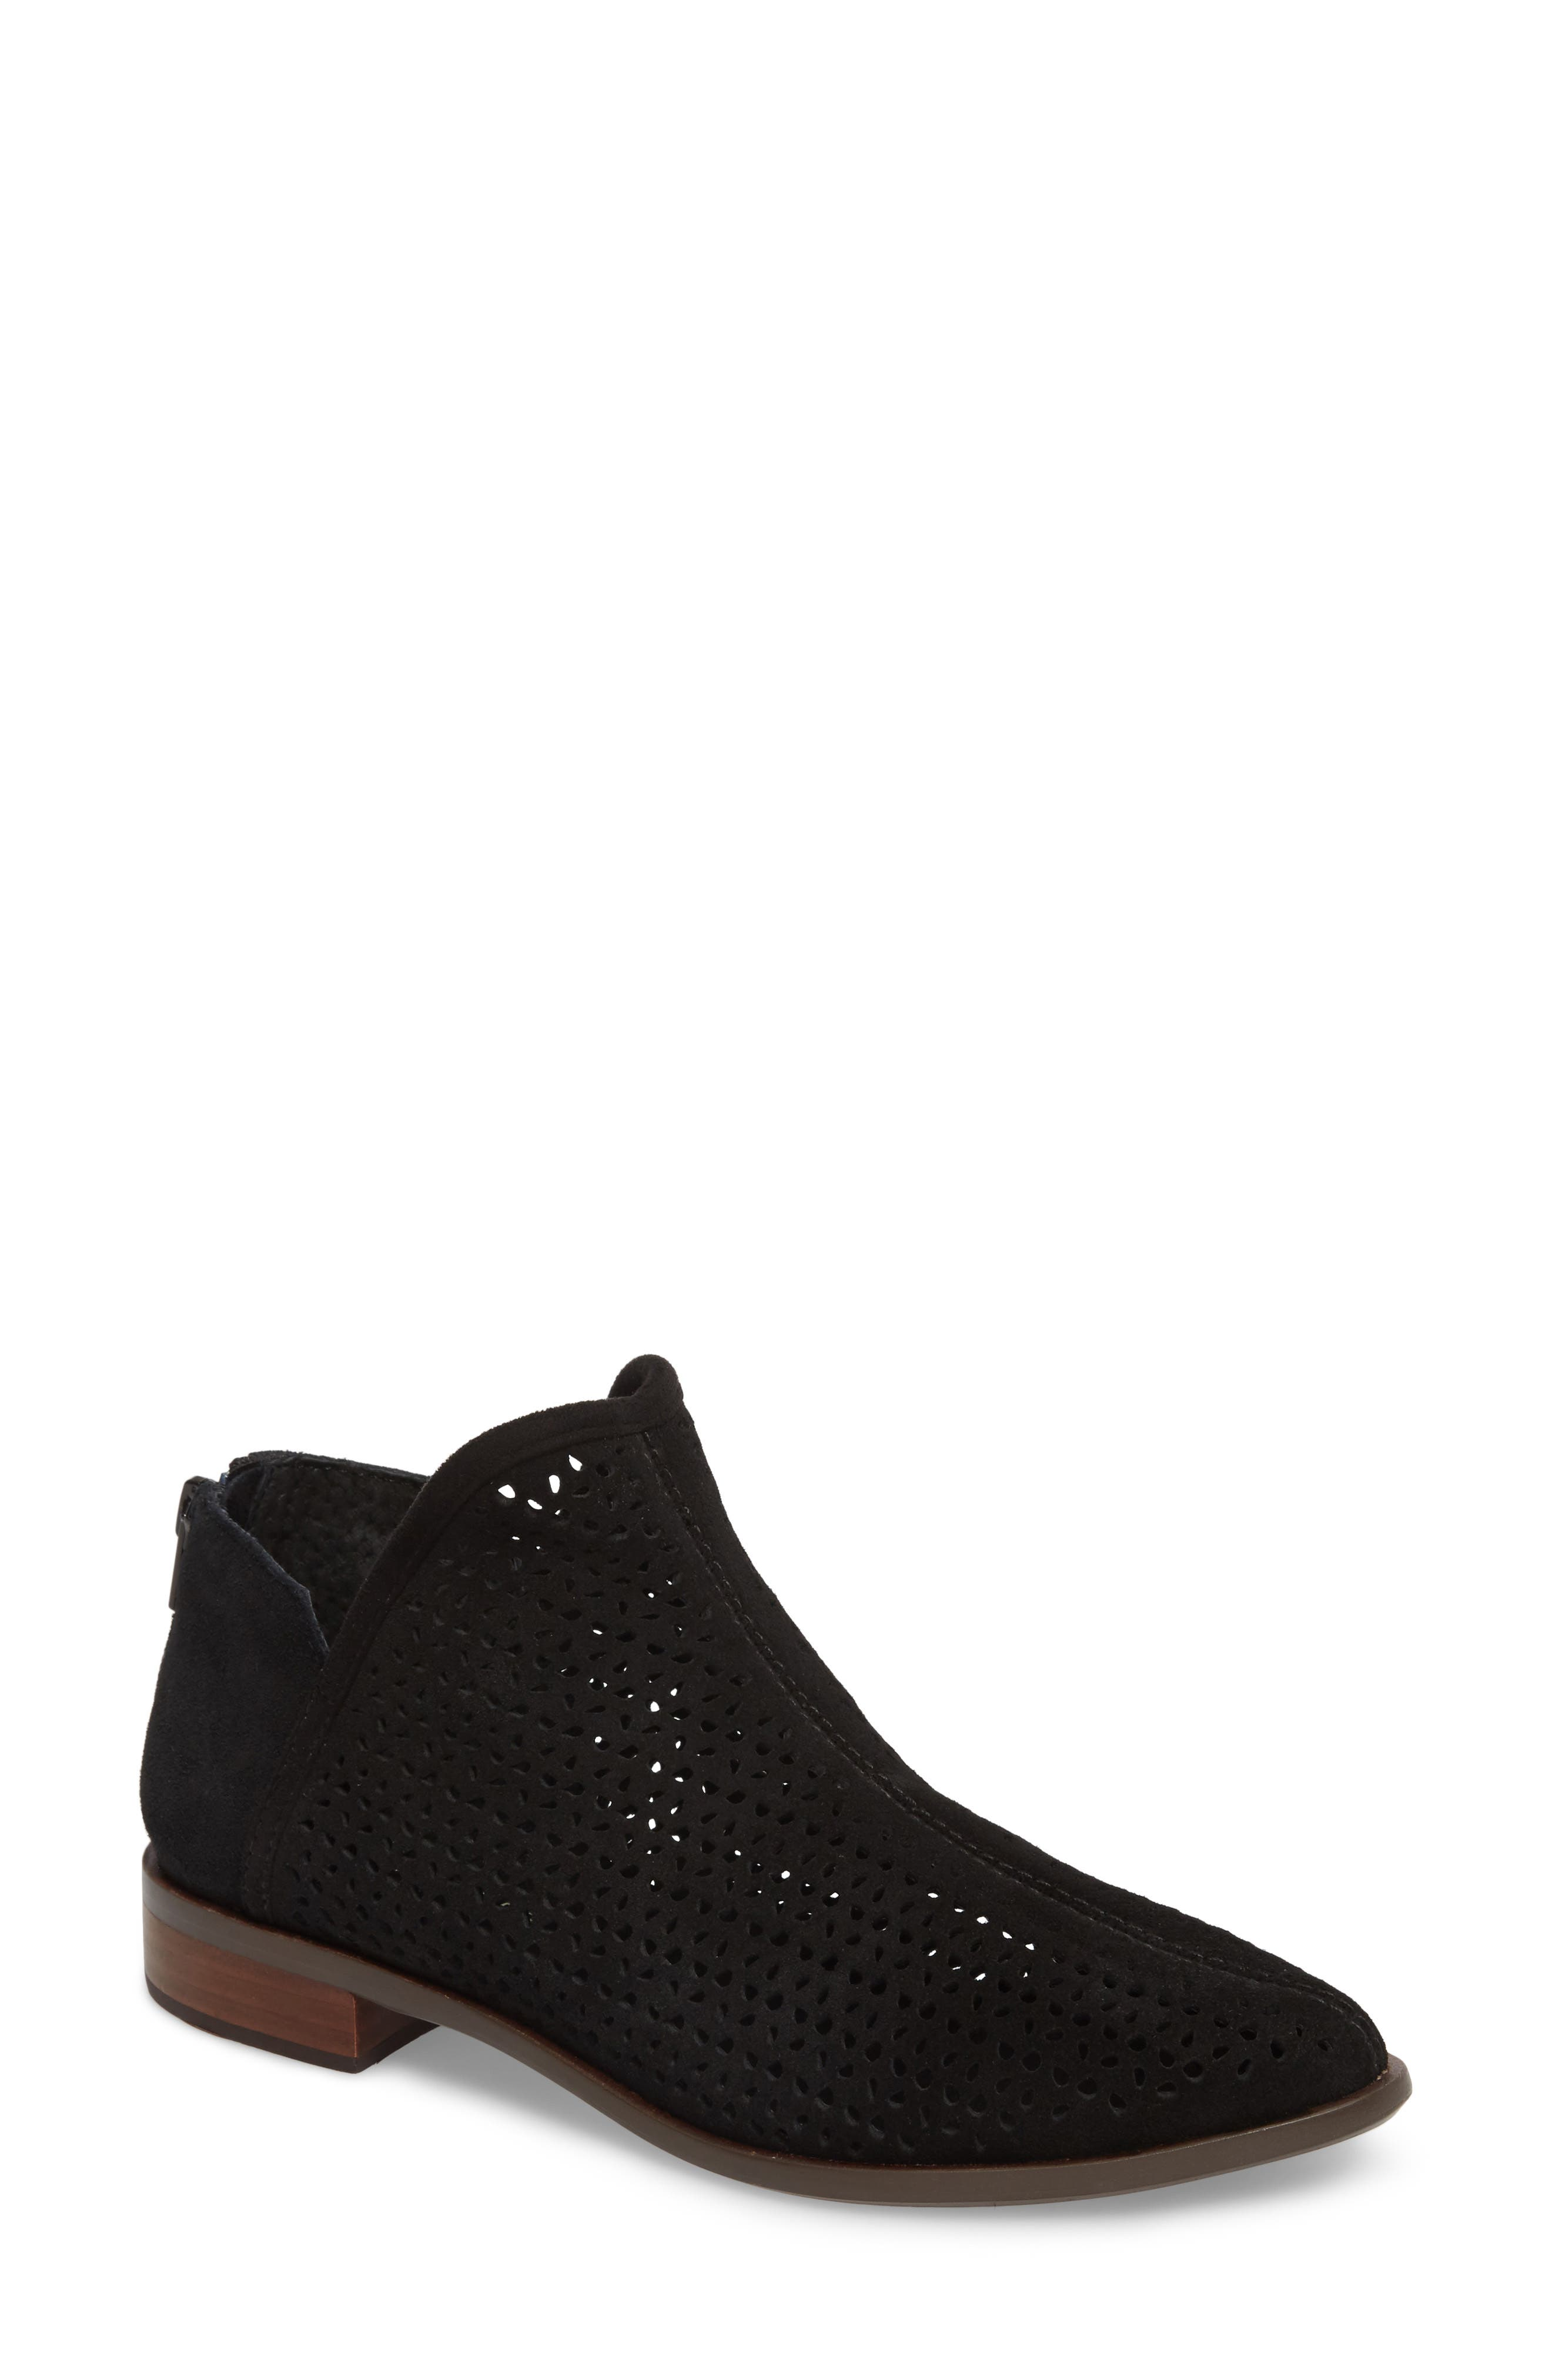 Alley Perforated Bootie,                             Main thumbnail 1, color,                             Black